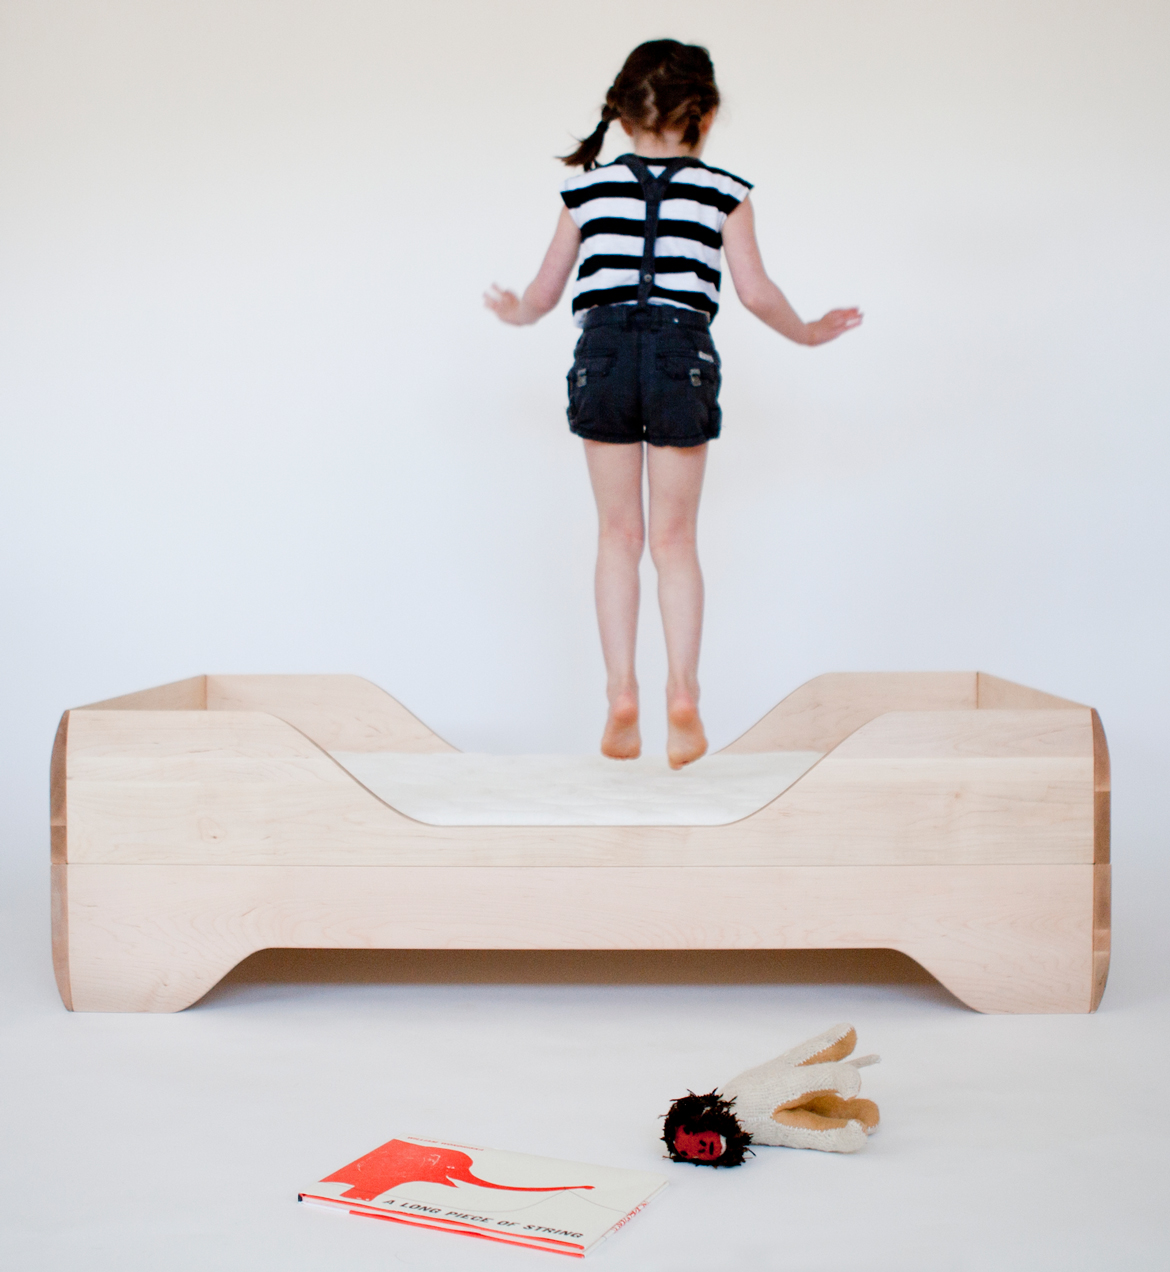 Echo Toddler Bed 'in the wild'